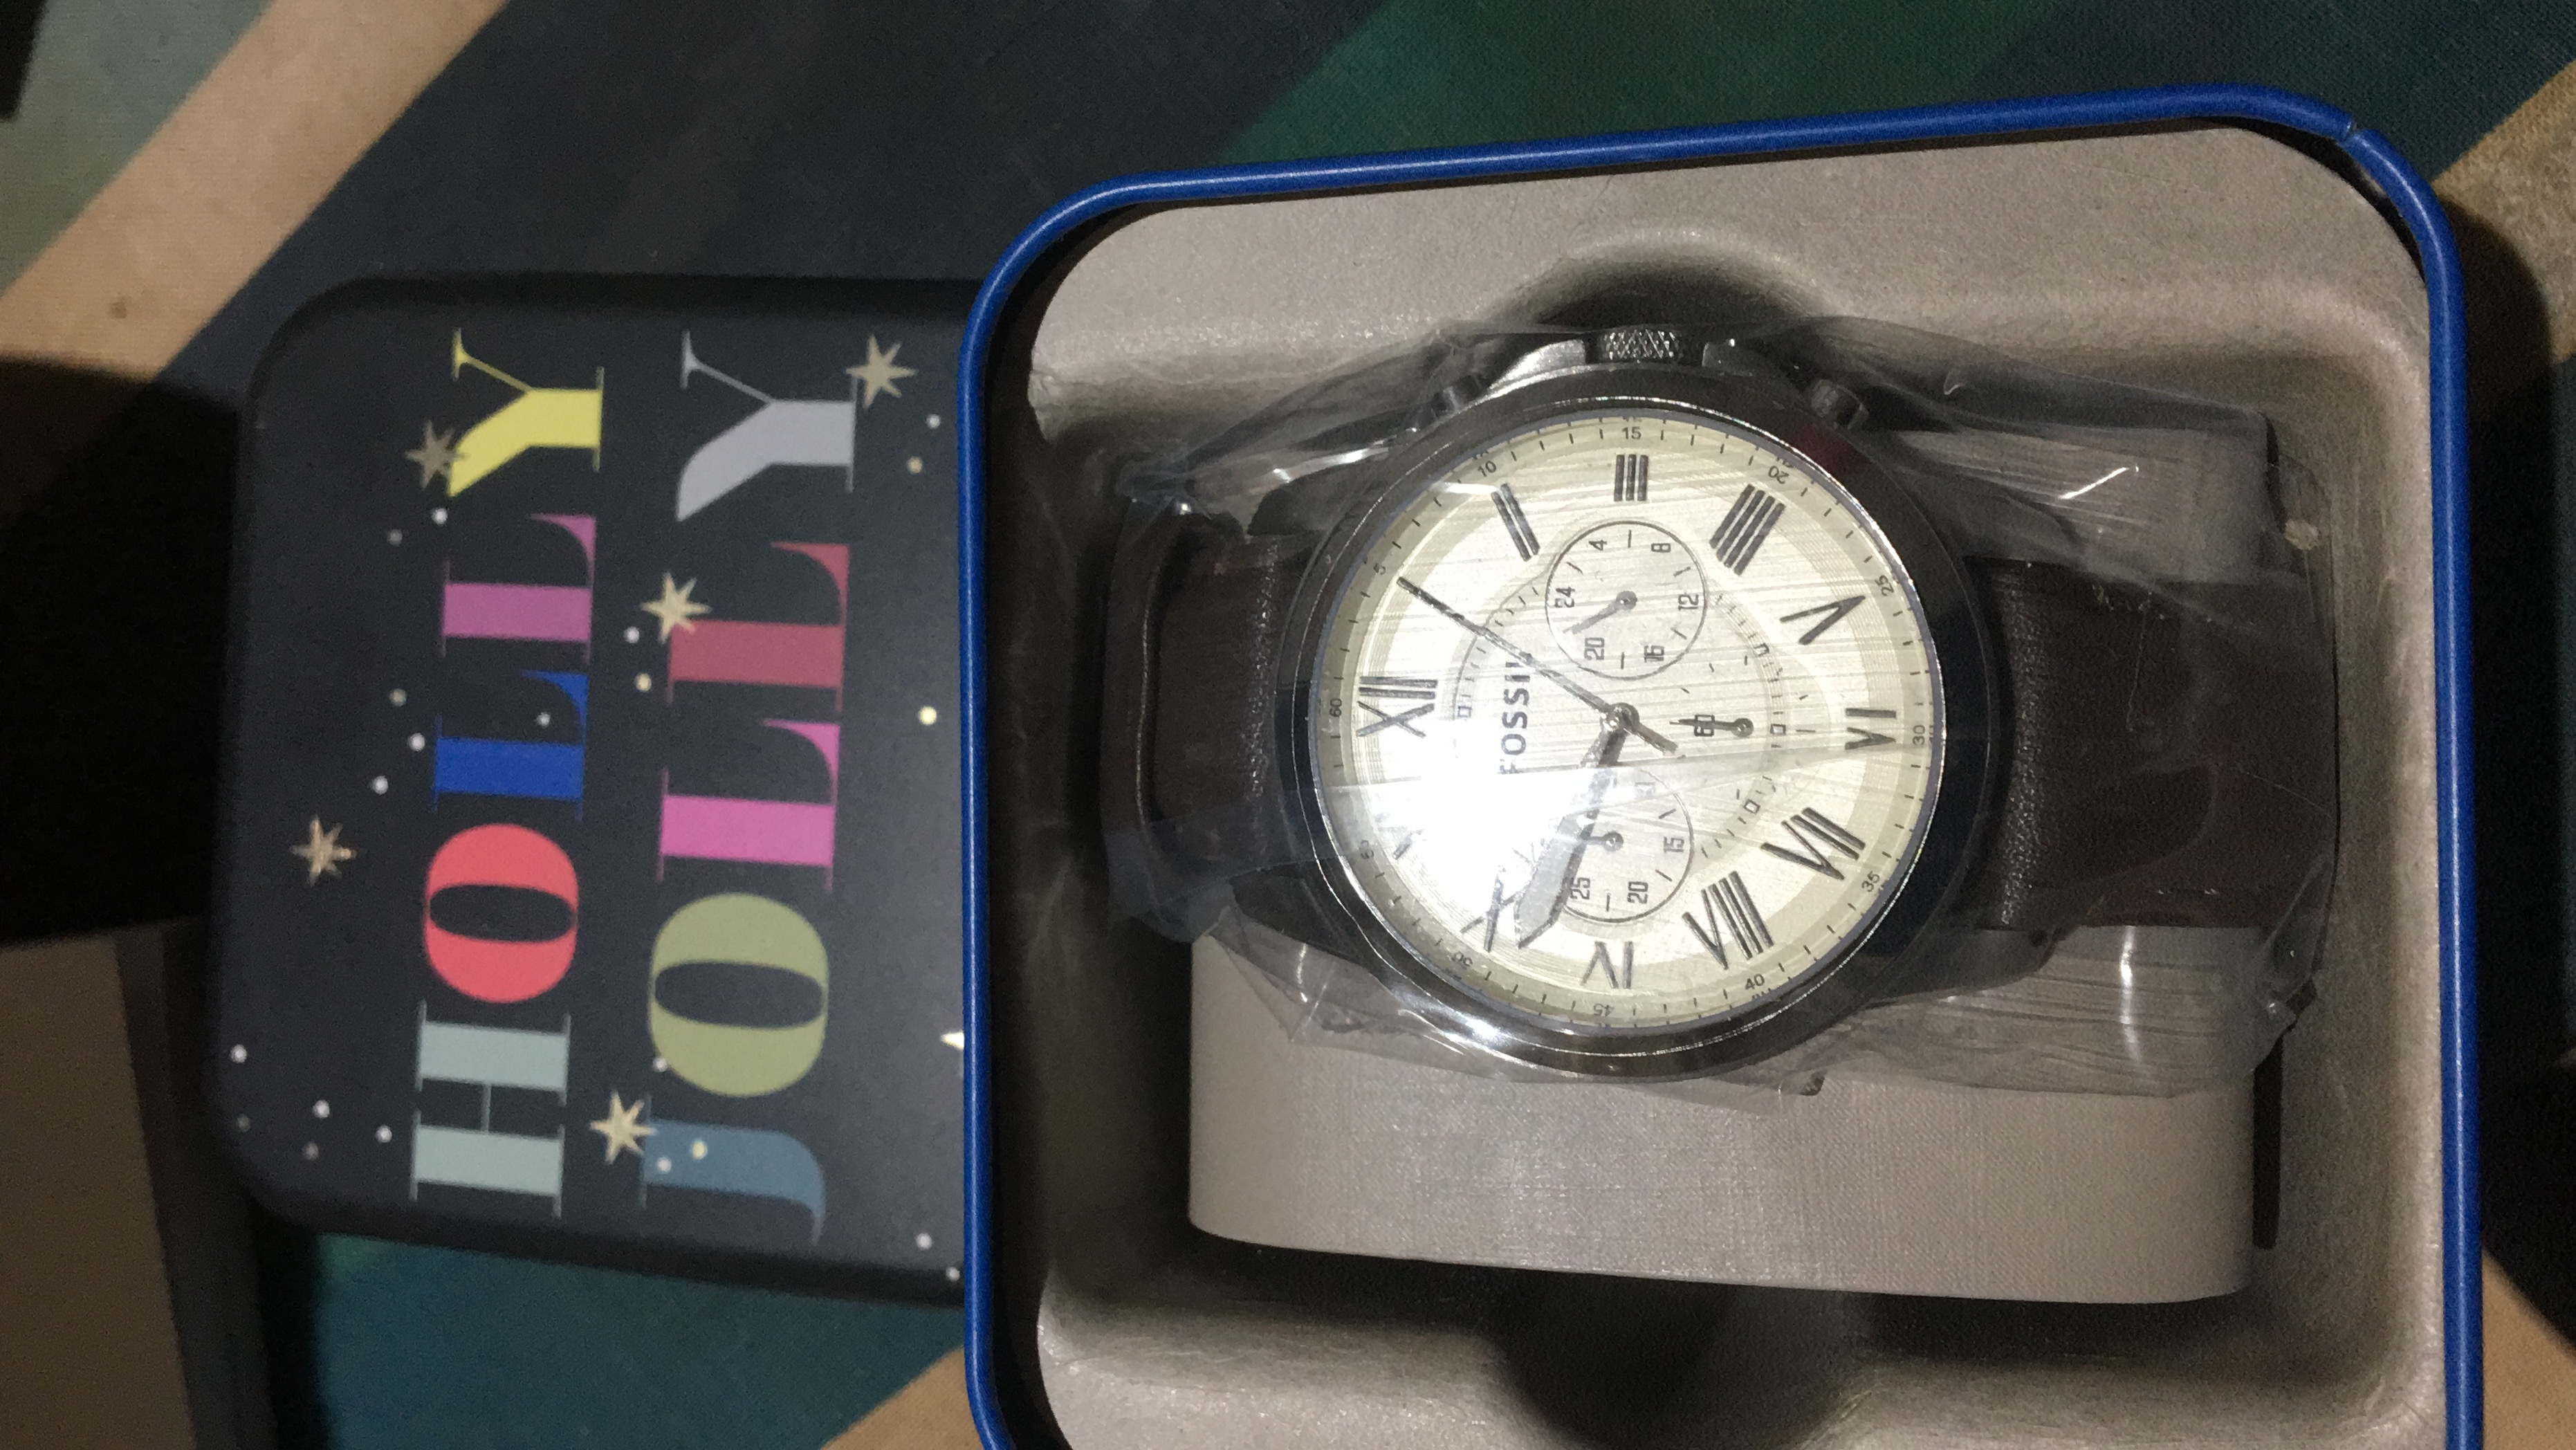 dd79bf03c40c Bought this as a surprise Christmas gift for my boyfriend. The watch is  high quality and it looks lovely. It even came in a festive Fossil tin-  making it an ...